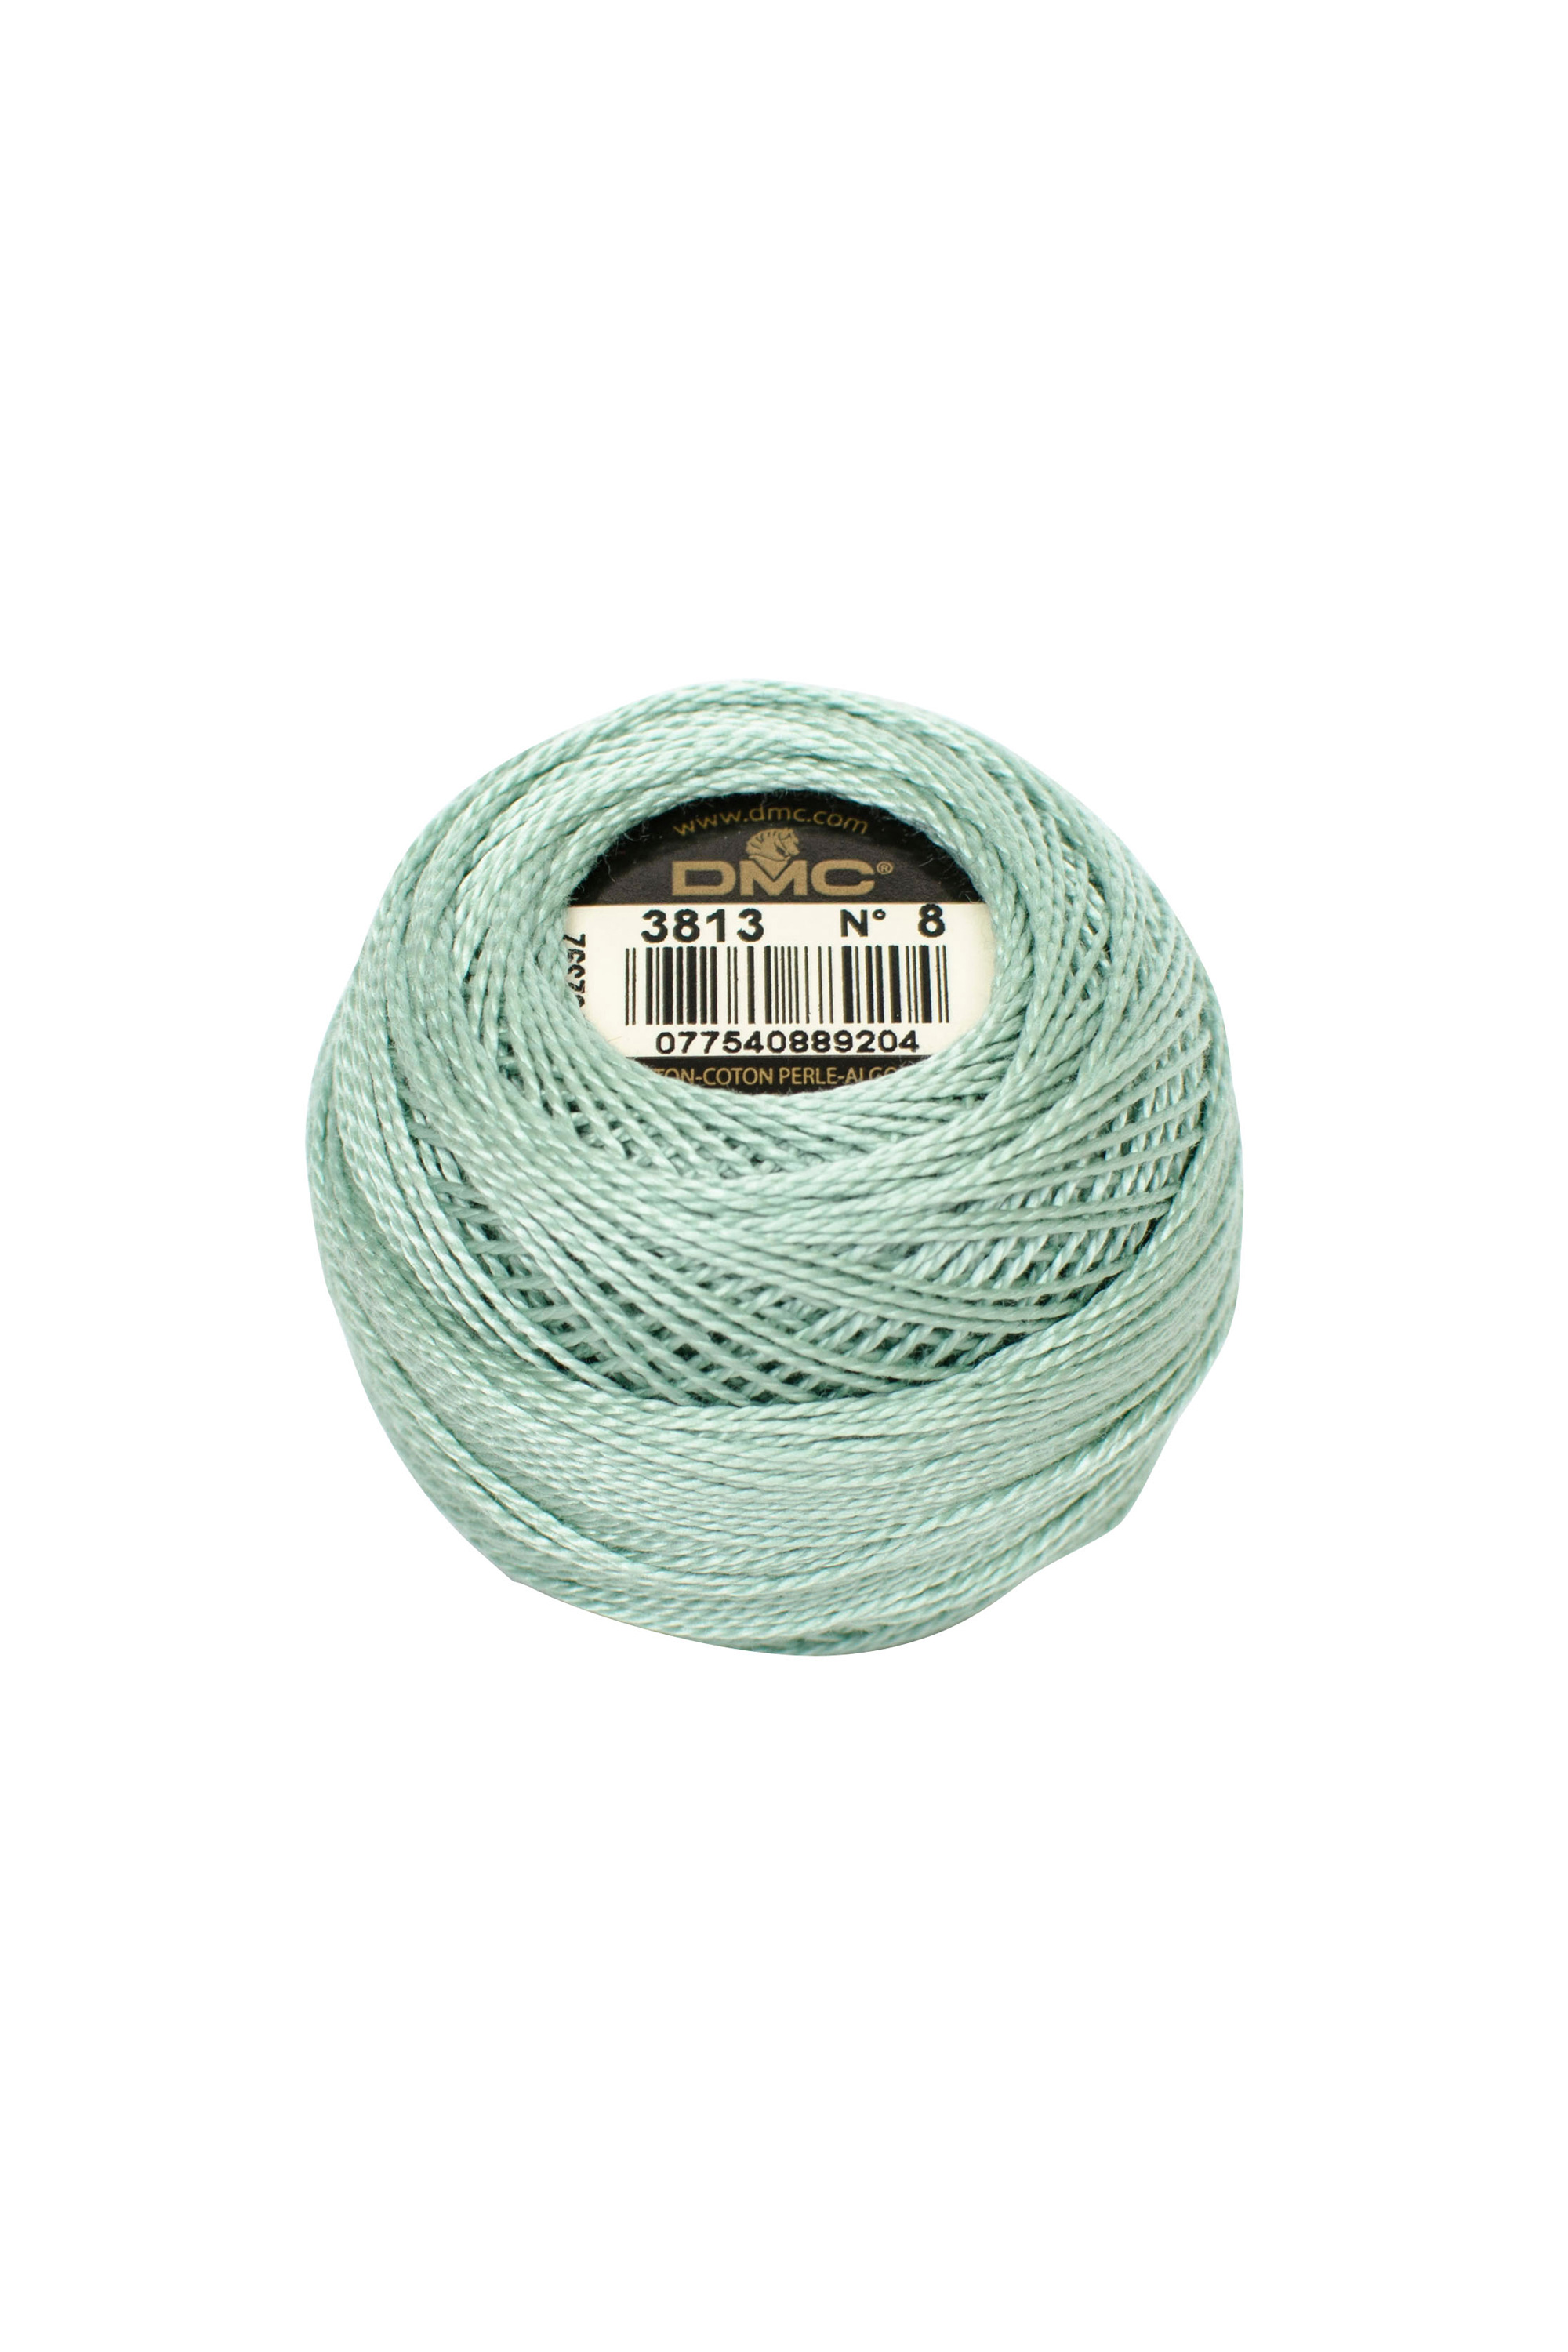 DMC Cotton Perle Pearl Thread Art 116 Box 10 x 10g ball Thick No 5 Colour Blanc